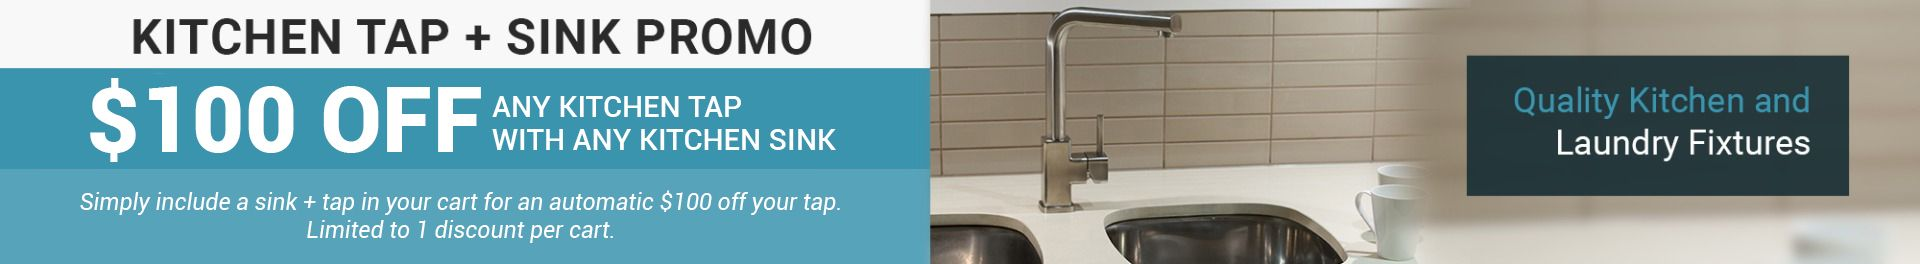 Simply include a sink + tap in your cart for an automatic $100 off your tap. Limited to 1 discount per cart.